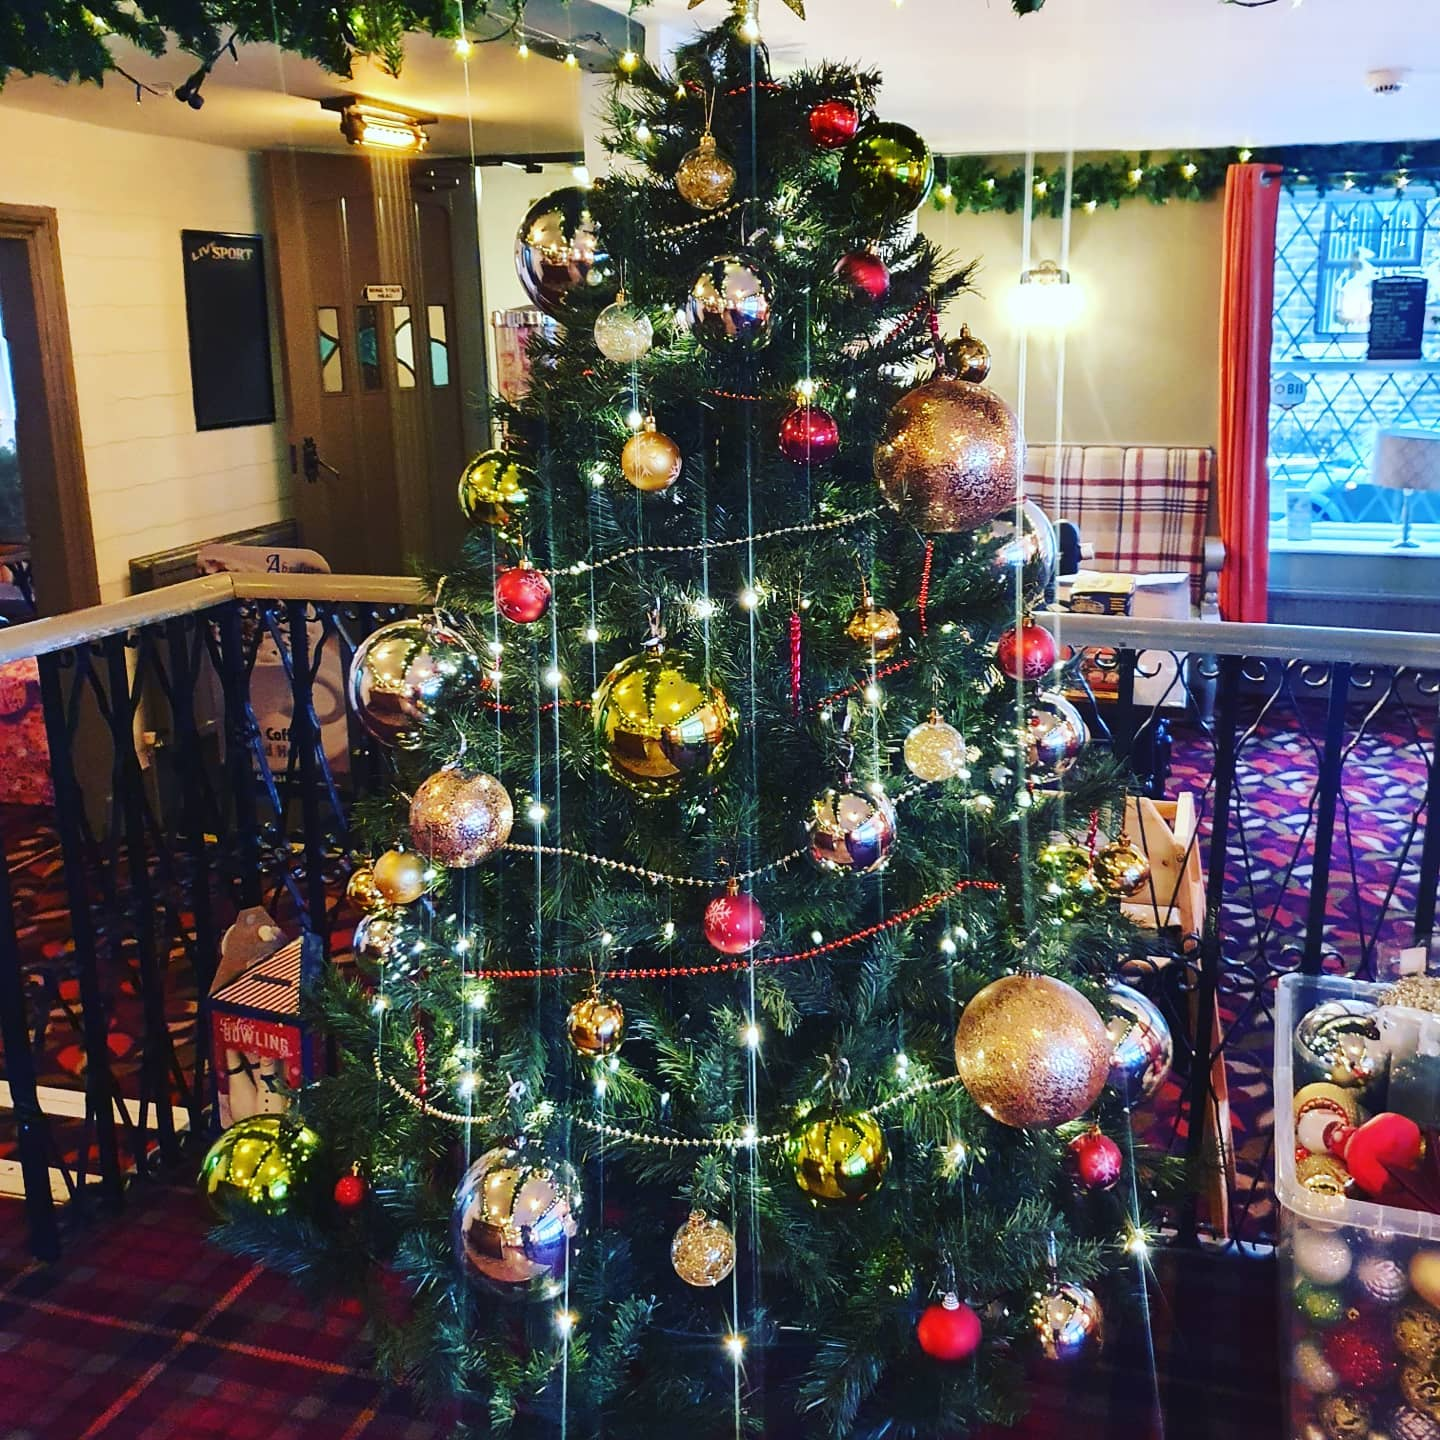 The Manchester pub celebrating Christmas in May for those who missed out last year, The Manc